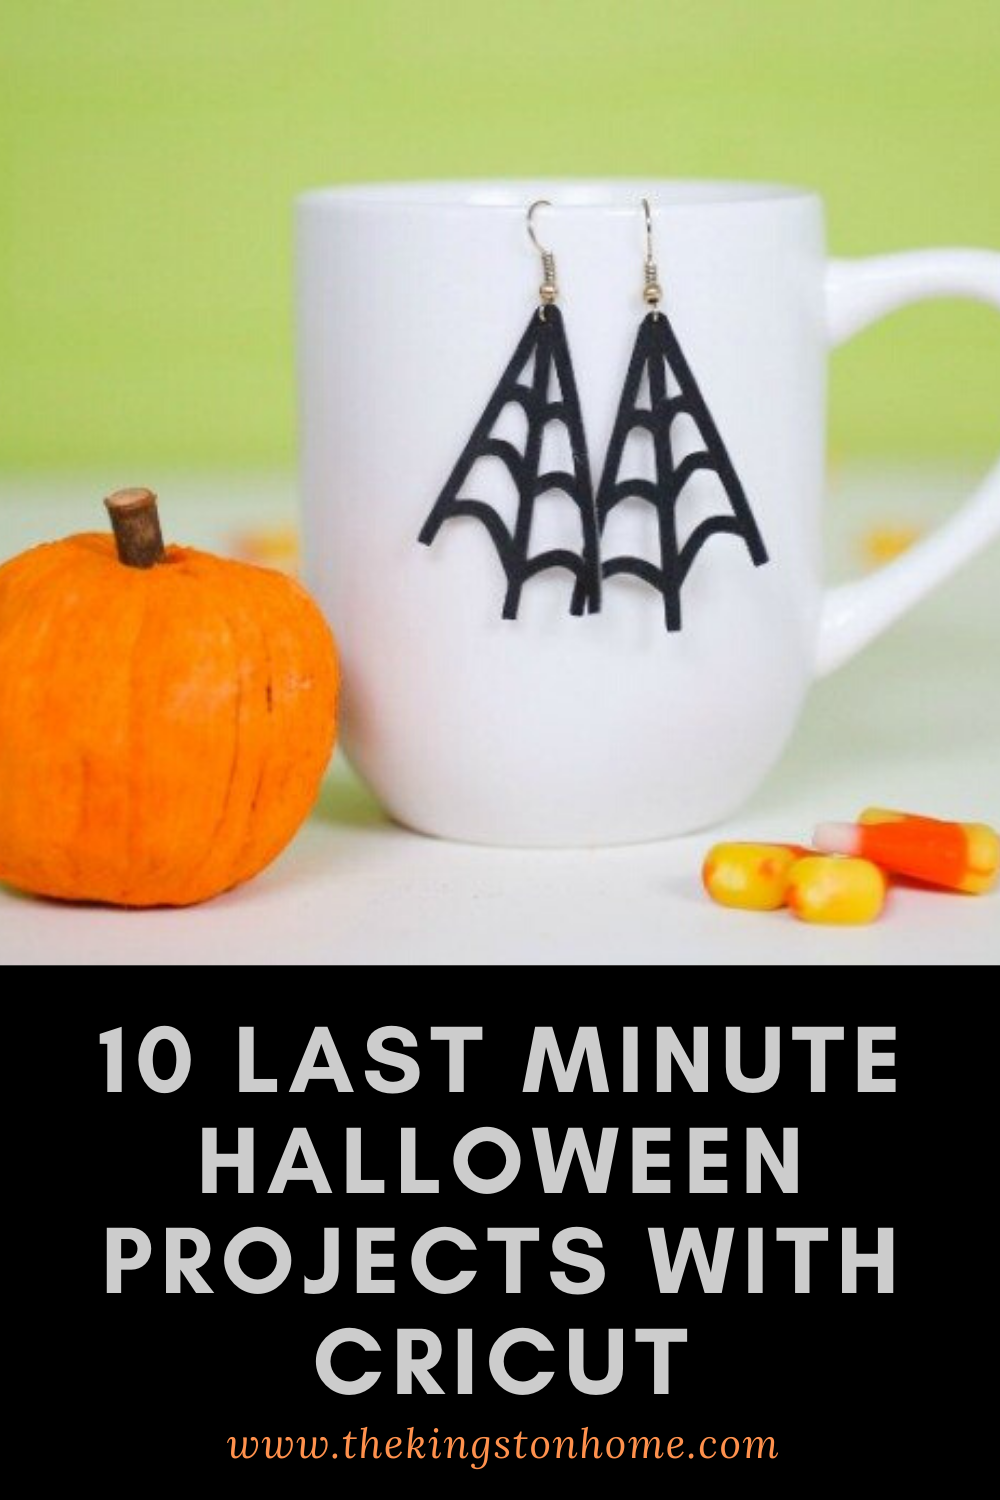 10 Last Minute Halloween Projects with Cricut - The Kingston Home: With Halloween fast approaching, we've got 10 last minute projects you can make with the help of your Cricut machine! via @craftykingstons